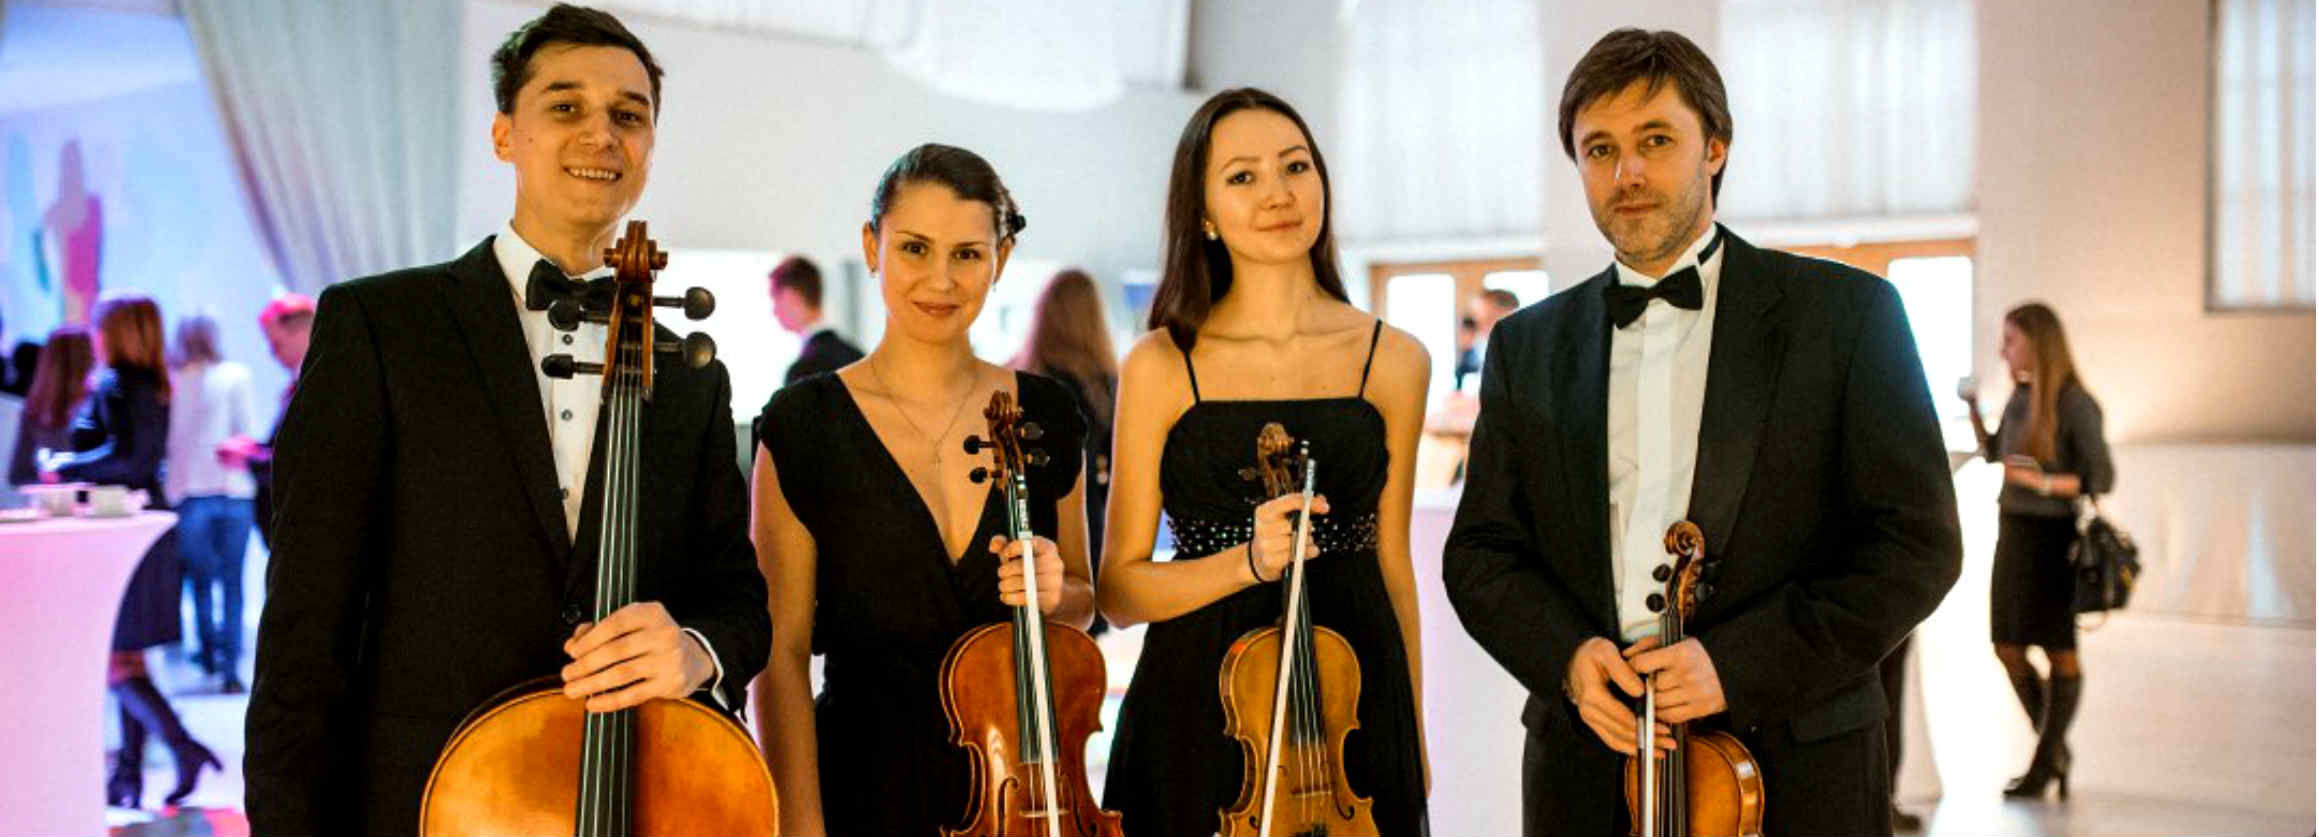 Orange County String Quartet: ceremony music,string quartet for corporate events, string quo, string trio